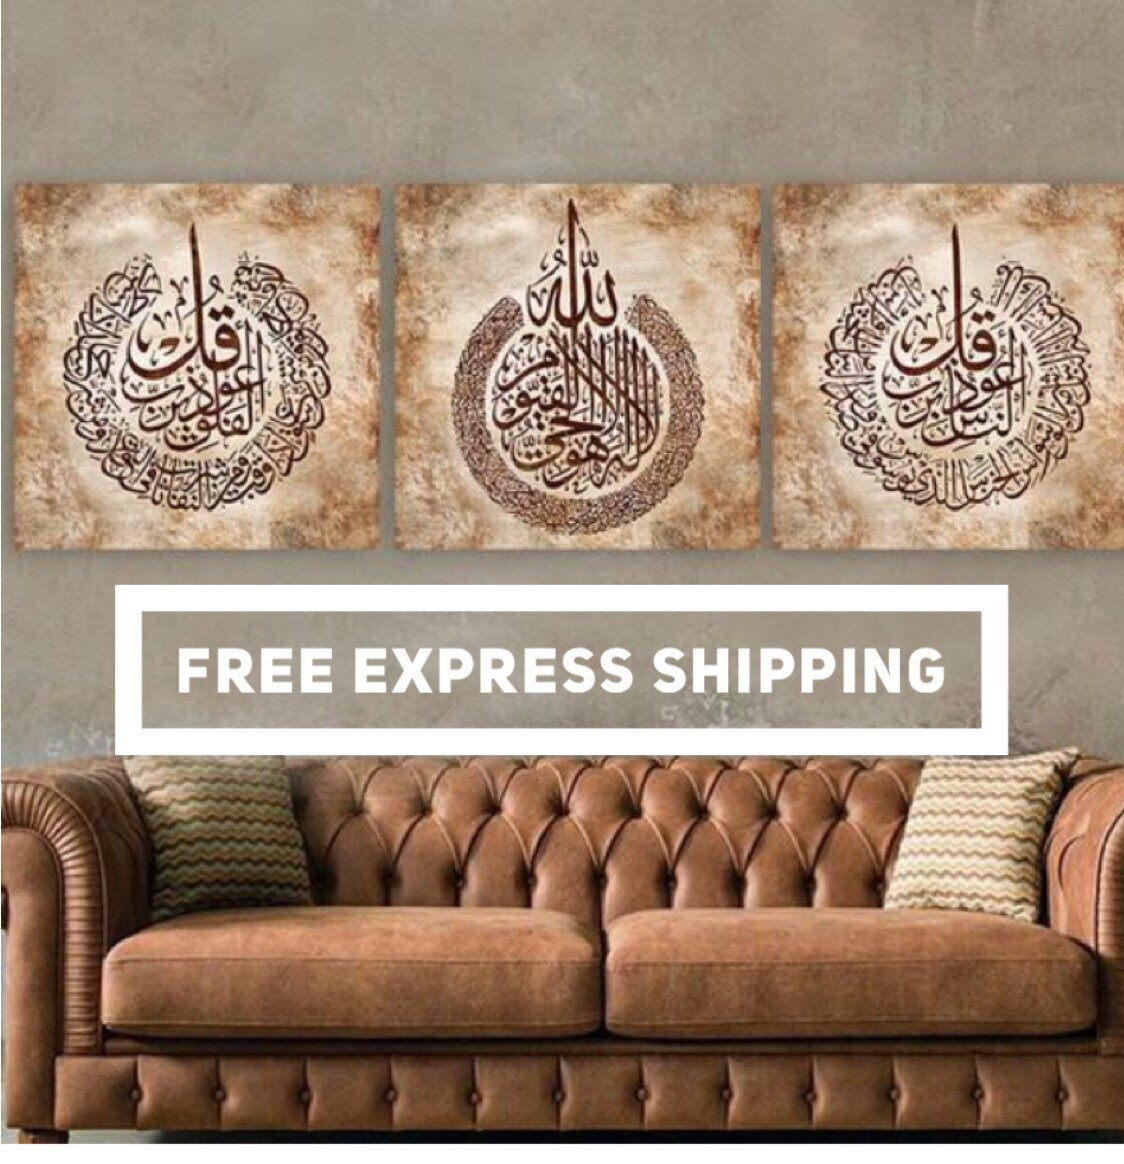 Motif Kursi Al Falaq Al Nas Ayatul Kursi Brown Islamic Wall Art Unique Design Canvas Print Islamic Gifts Gift For Muslims